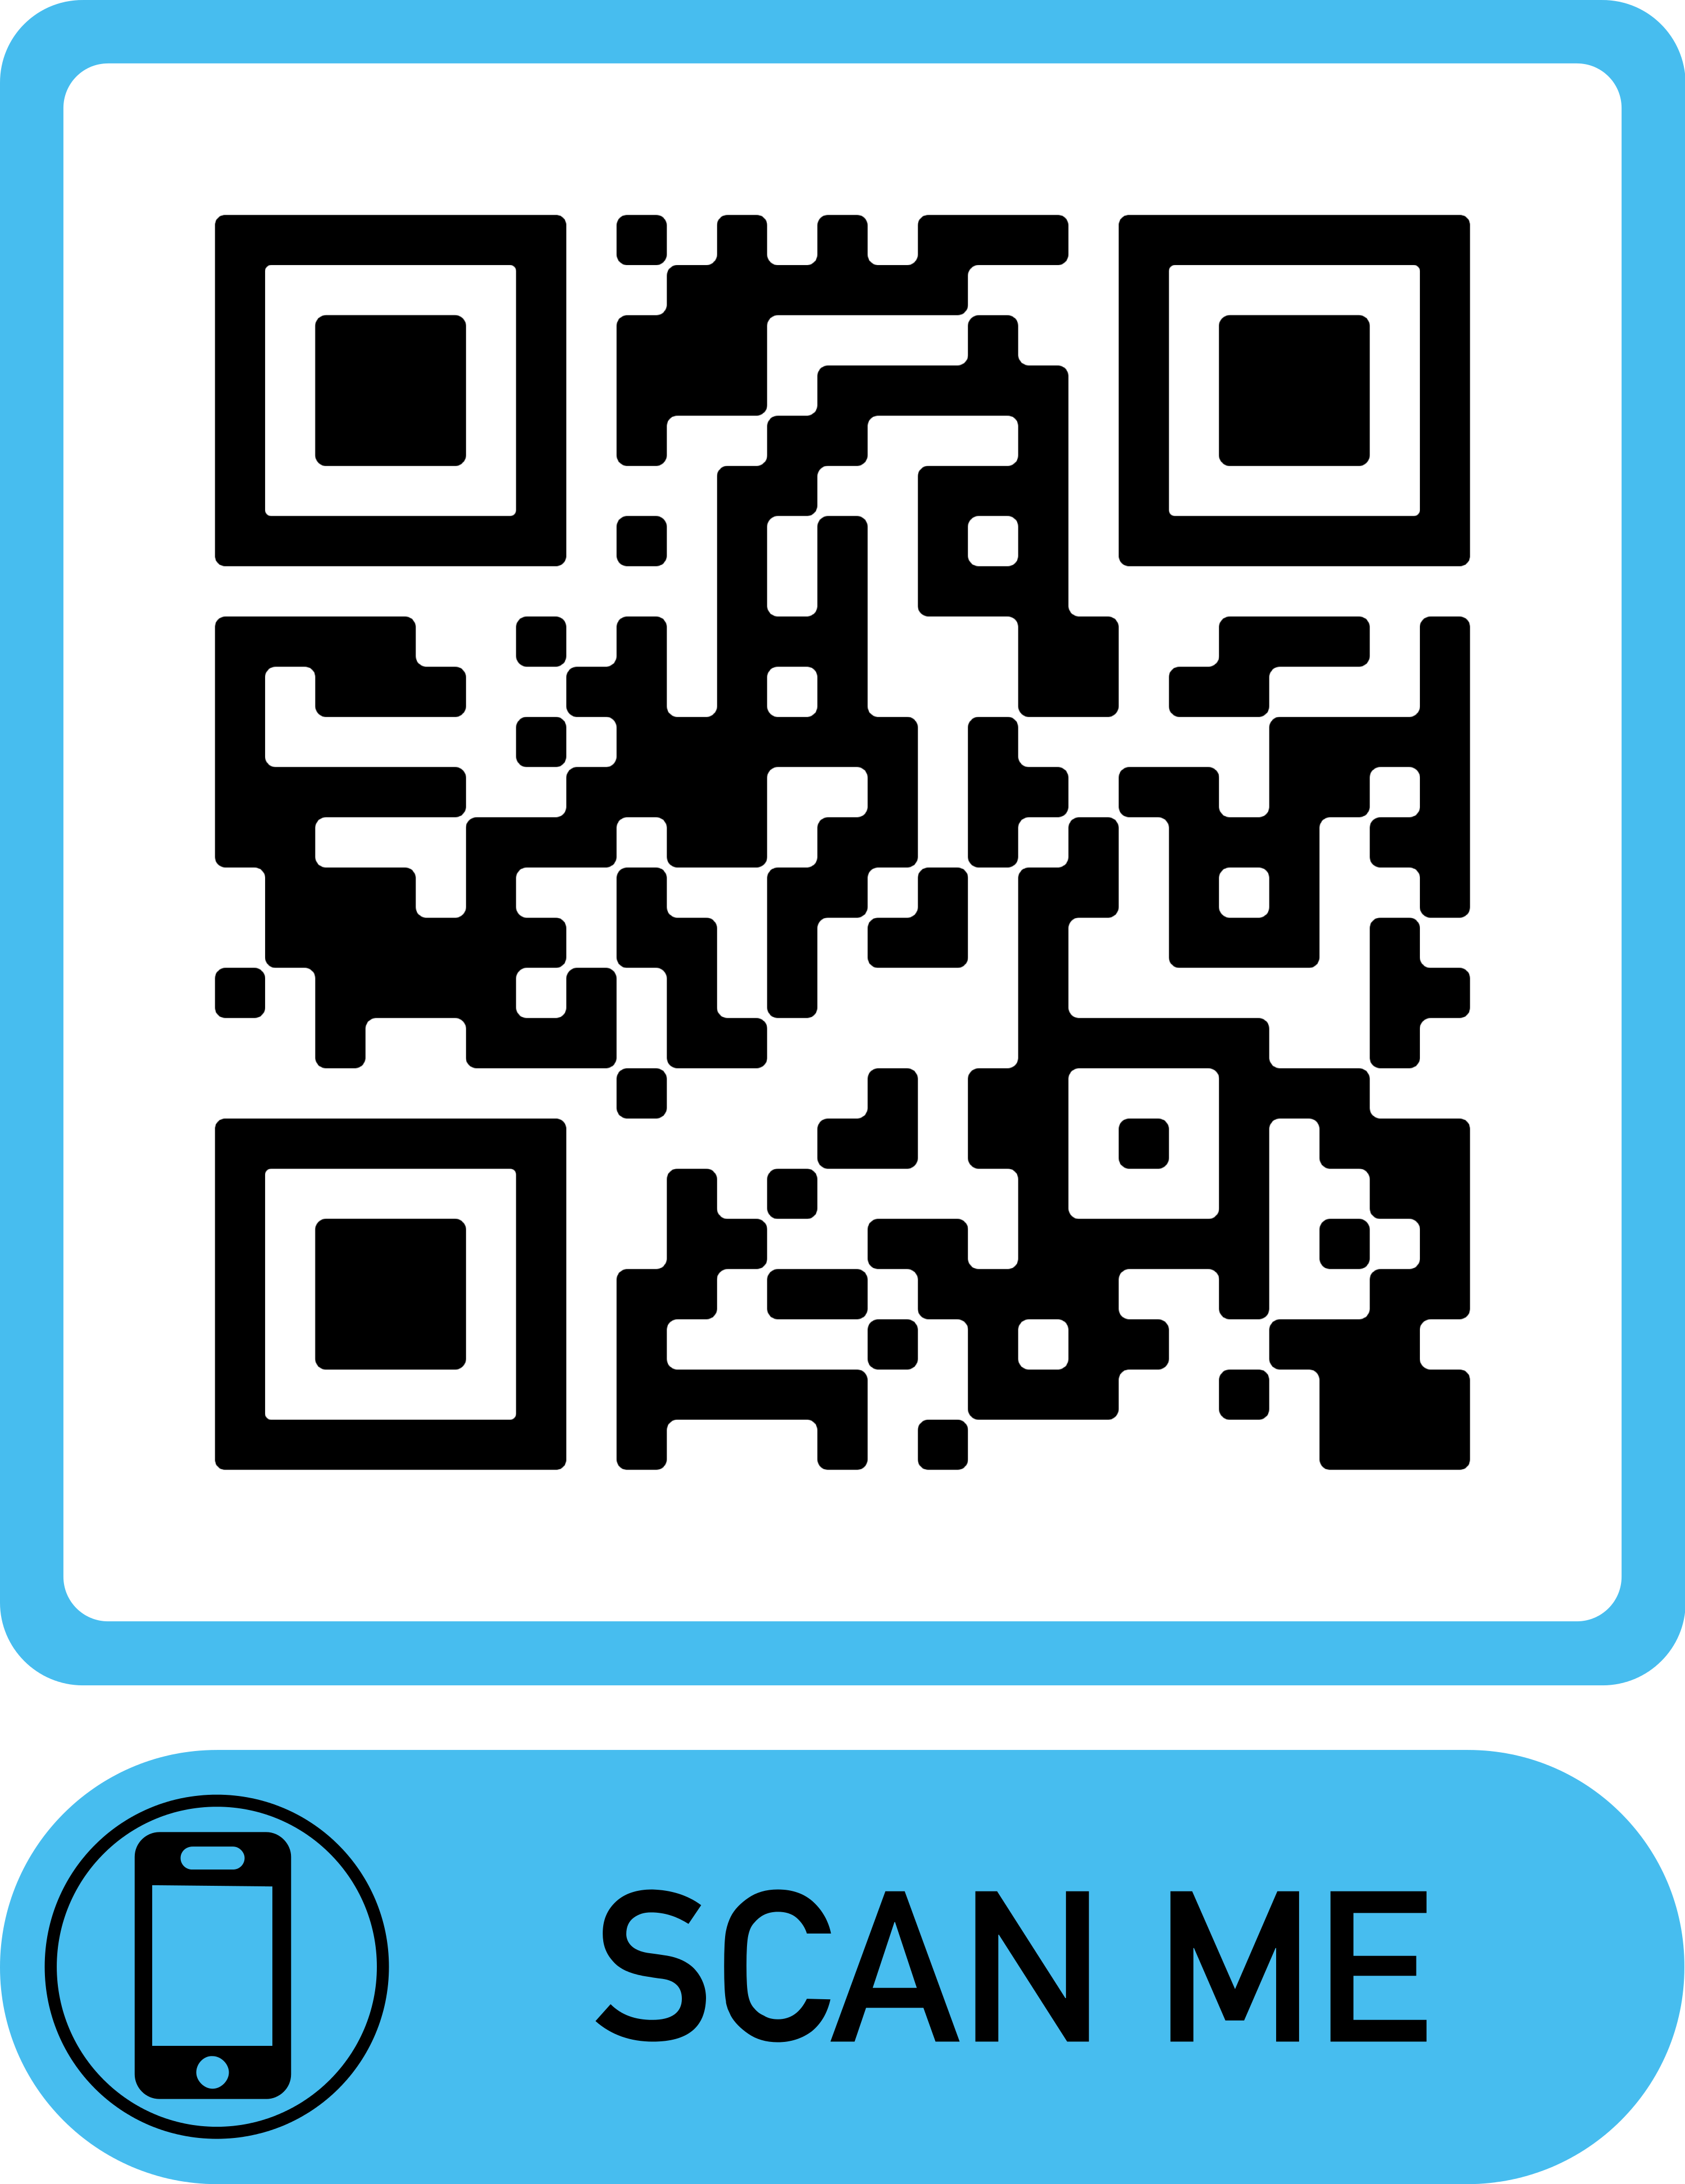 Students can enter the Team Toss Challenge using this QR Code.